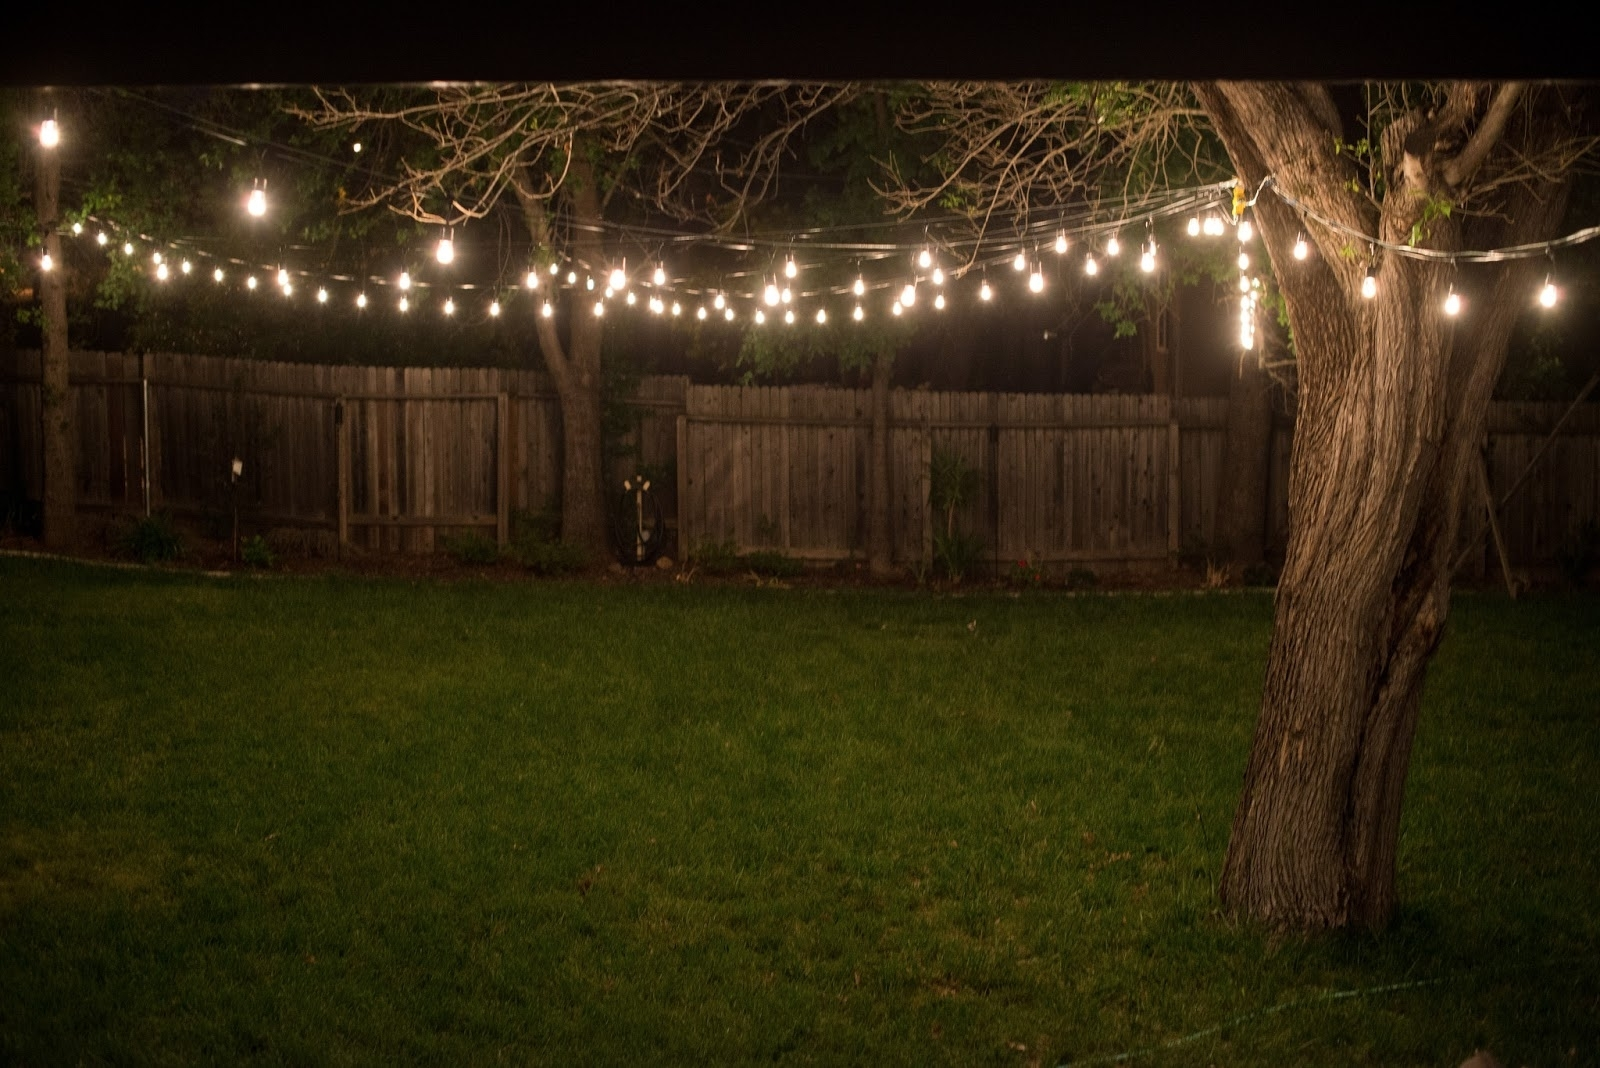 Well Known Outdoor Hanging Garden Lights Pertaining To Inspirations: Outdoor Lighting Strings Ideas Also String Lights (View 15 of 20)